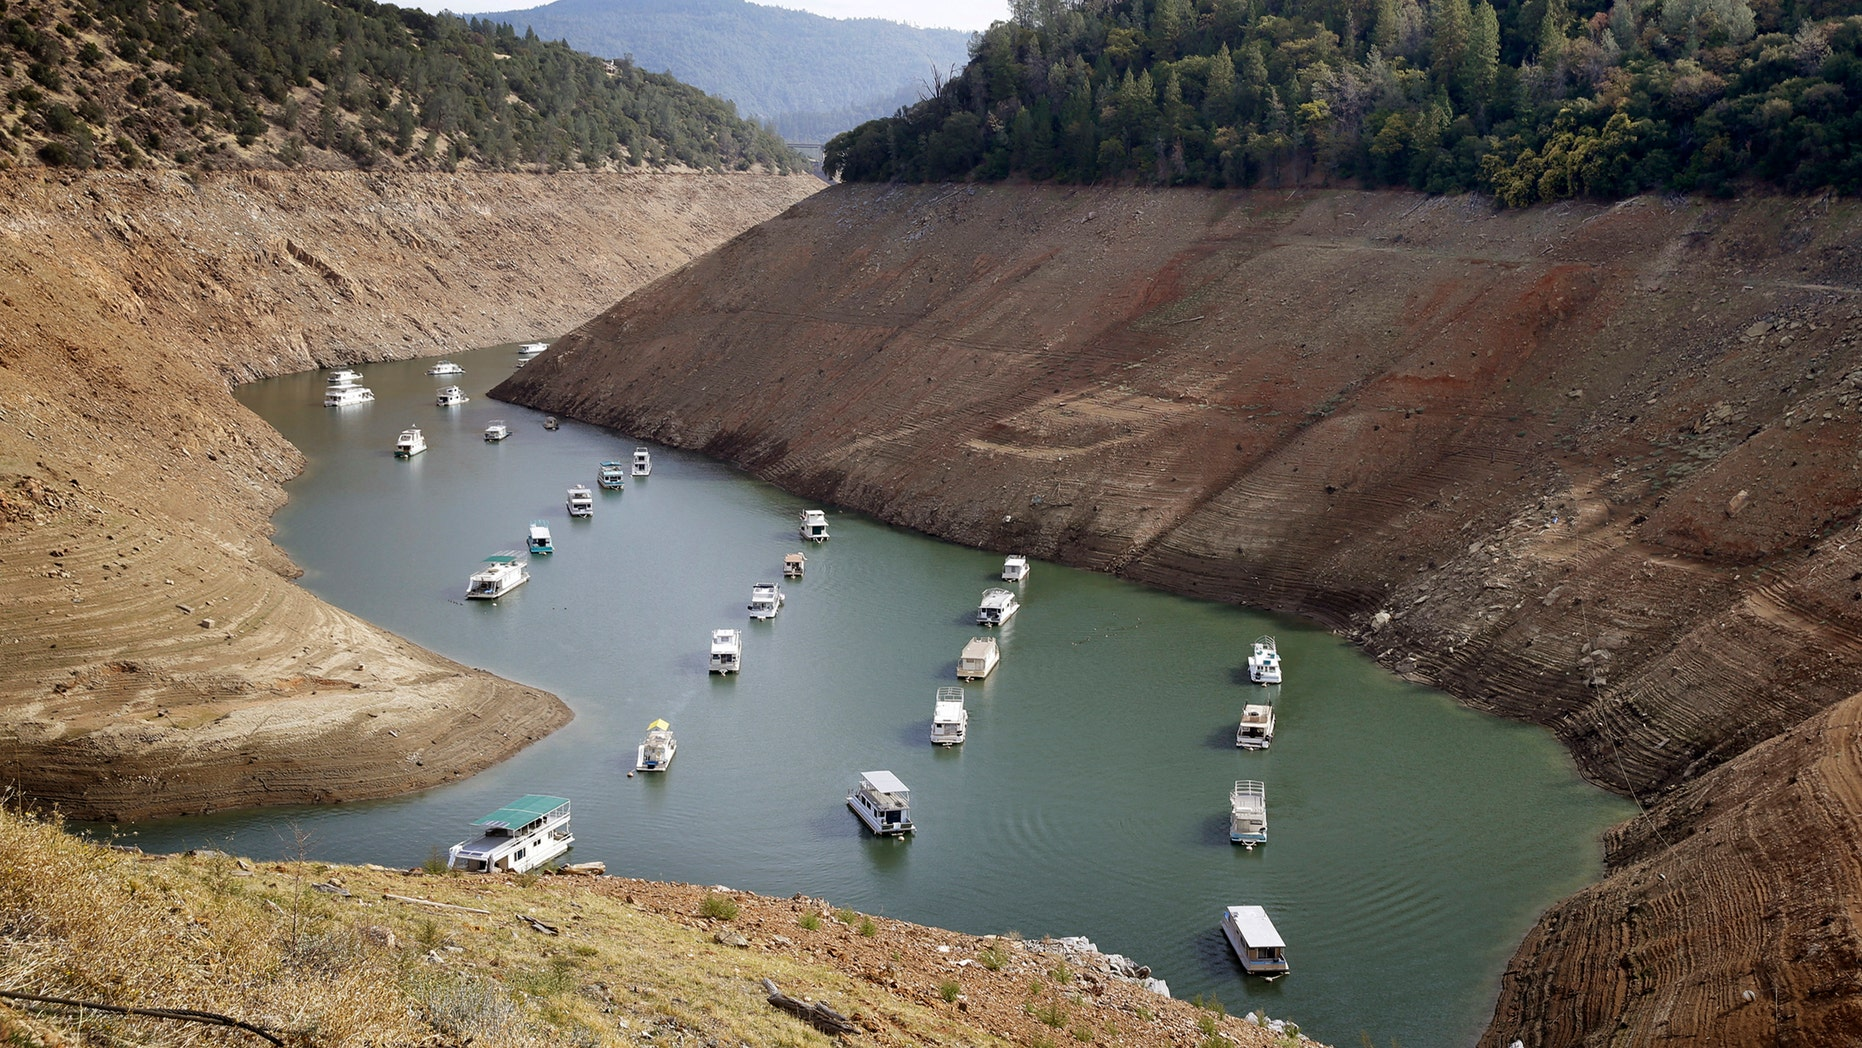 FILE - In this Thursday, Oct. 30, 2014, file photo, houseboats float in the drought-lowered waters of Oroville Lake near Oroville, Calif. Gov. Jerry Brown on Wednesday April 1, 2015 ordered sweeping and unprecedented measures to save water in California. Surveyors on Wednesday found the lowest snow level in the Sierra Nevada snowpack in 65 years of record-keeping, marking a fourth consecutive year of vanishing snow that California depends on to melt into rivers and replenish reservoirs.